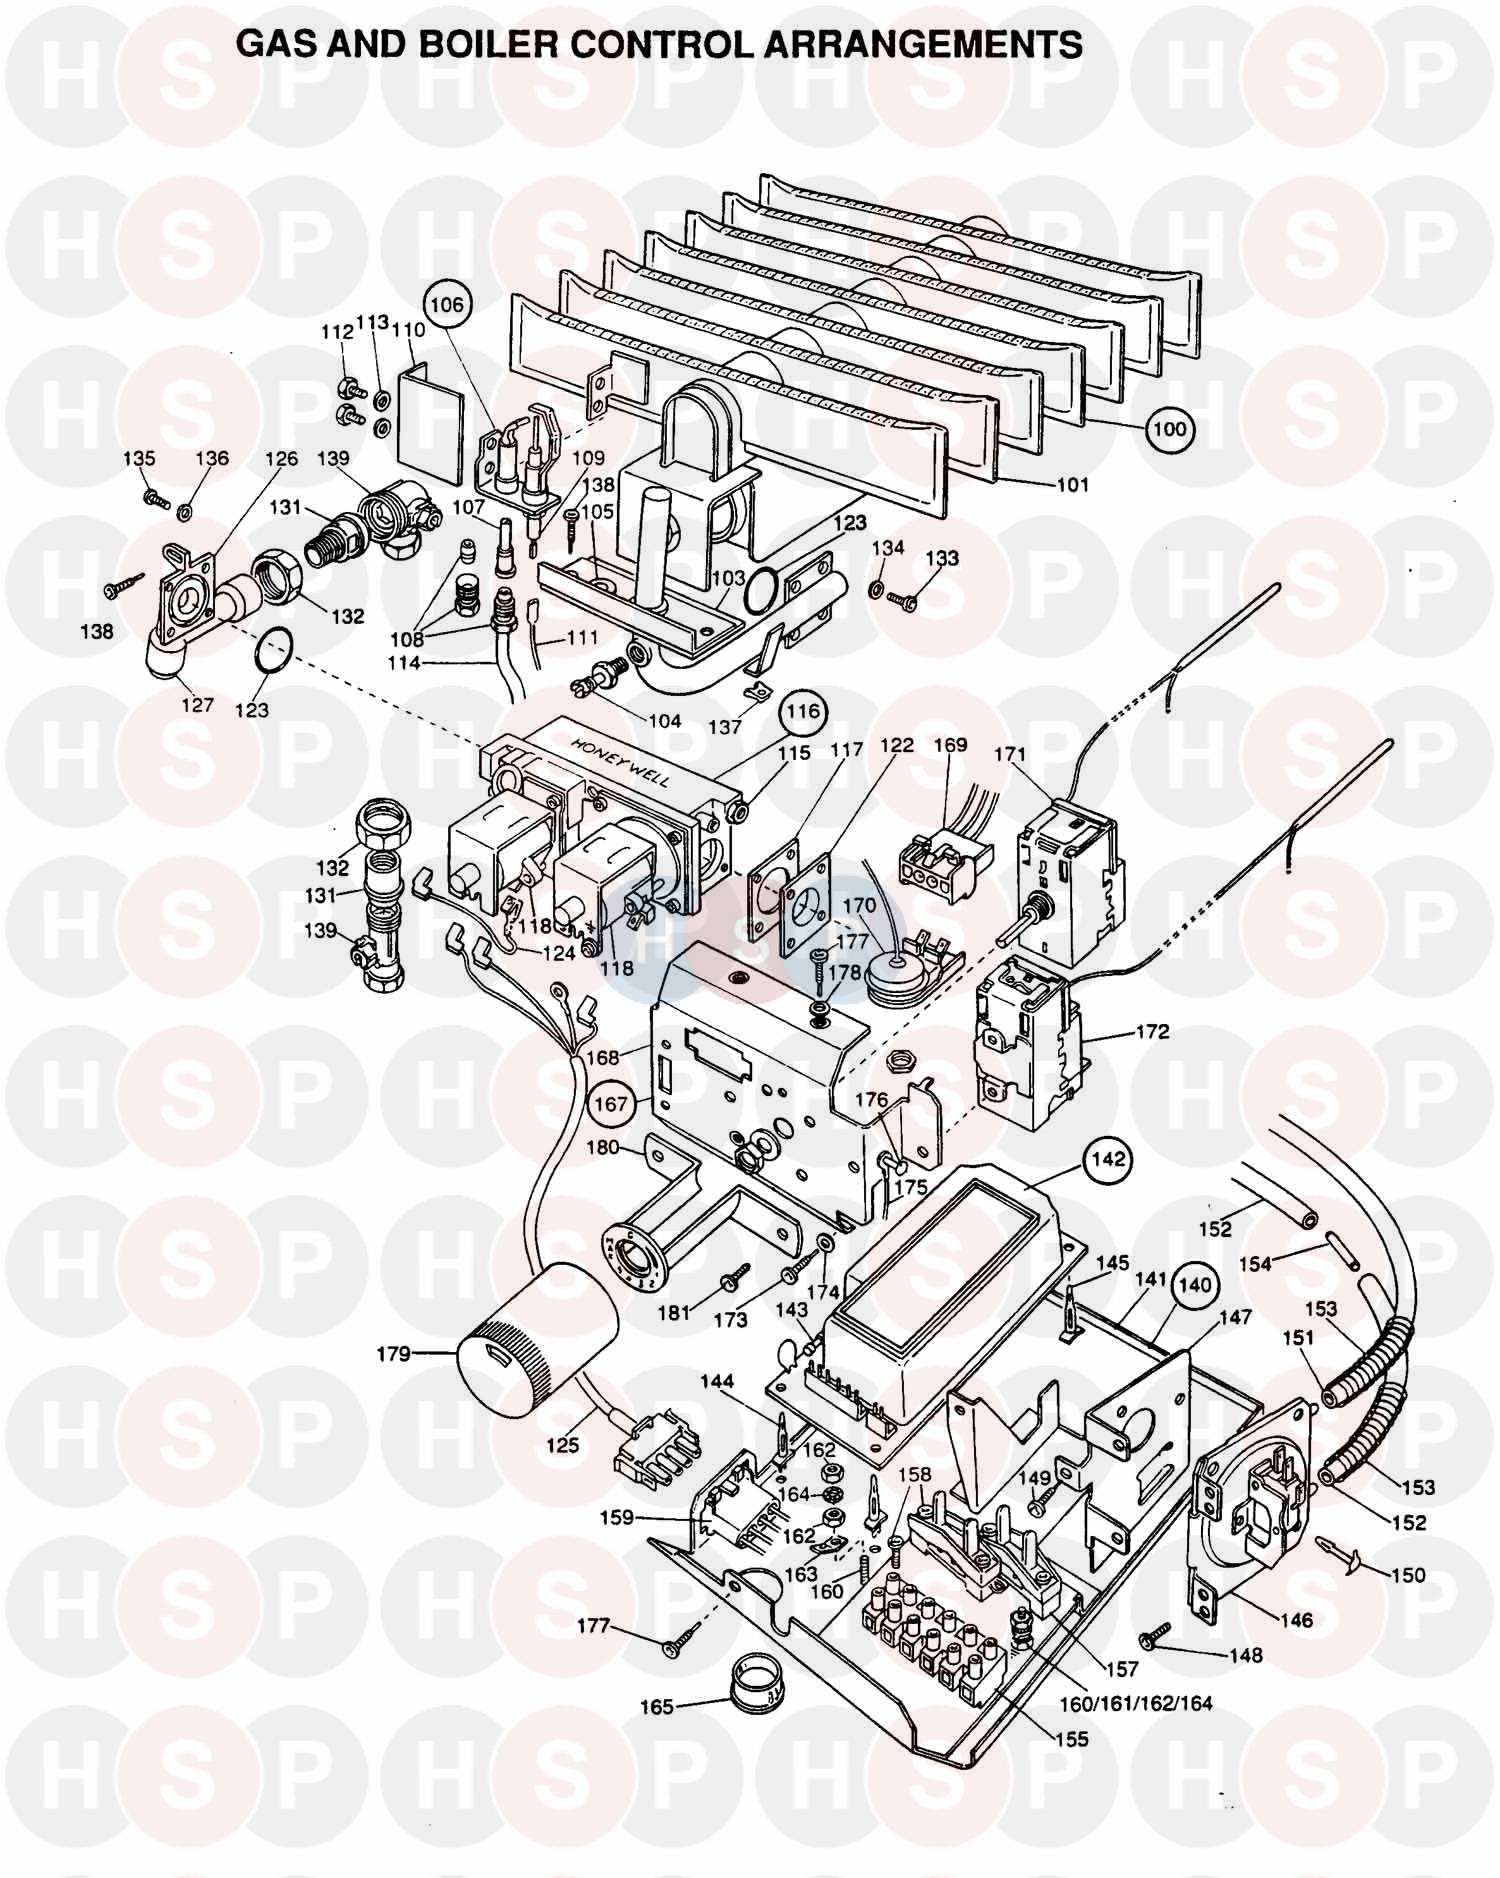 Honeywell Zone Valve Wiring Diagram At Kwikpik With Images - Sh3.ME